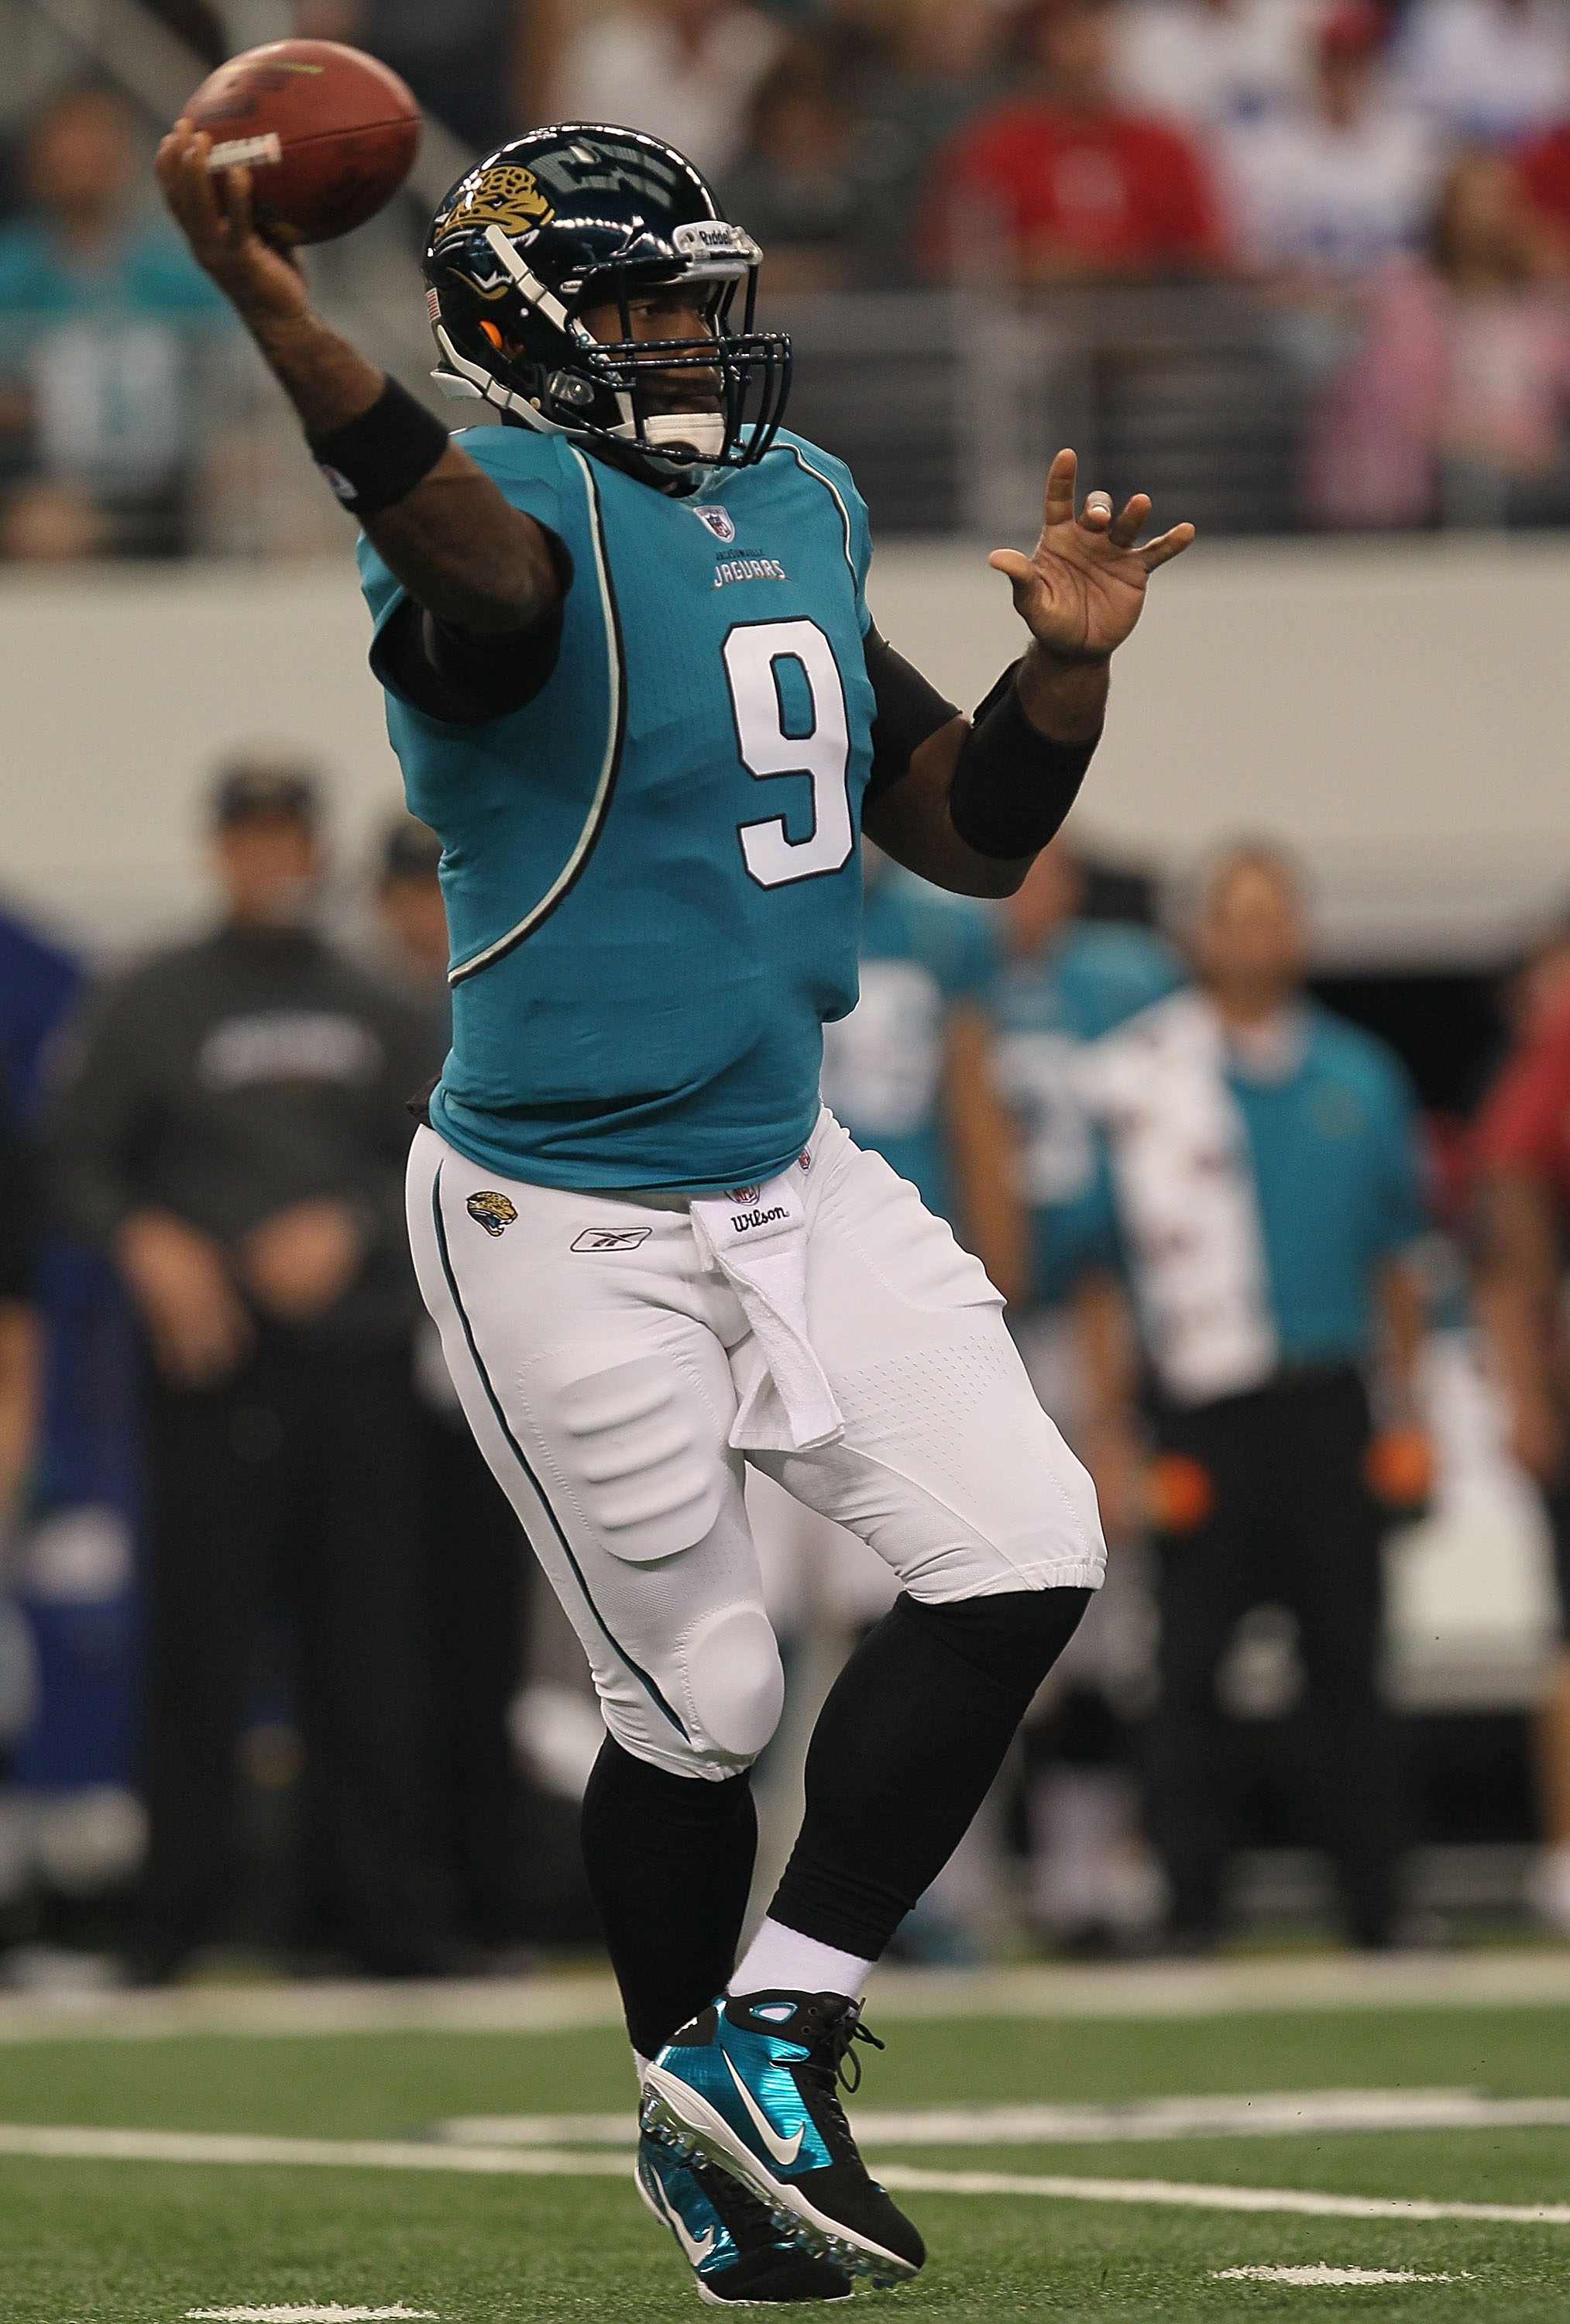 ARLINGTON, TX - OCTOBER 31:  Quarterback David Garrard #9 of the Jacksonville Jaguars throws a pass against the Dallas Cowboys at Cowboys Stadium on October 31, 2010 in Arlington, Texas.  (Photo by Stephen Dunn/Getty Images)